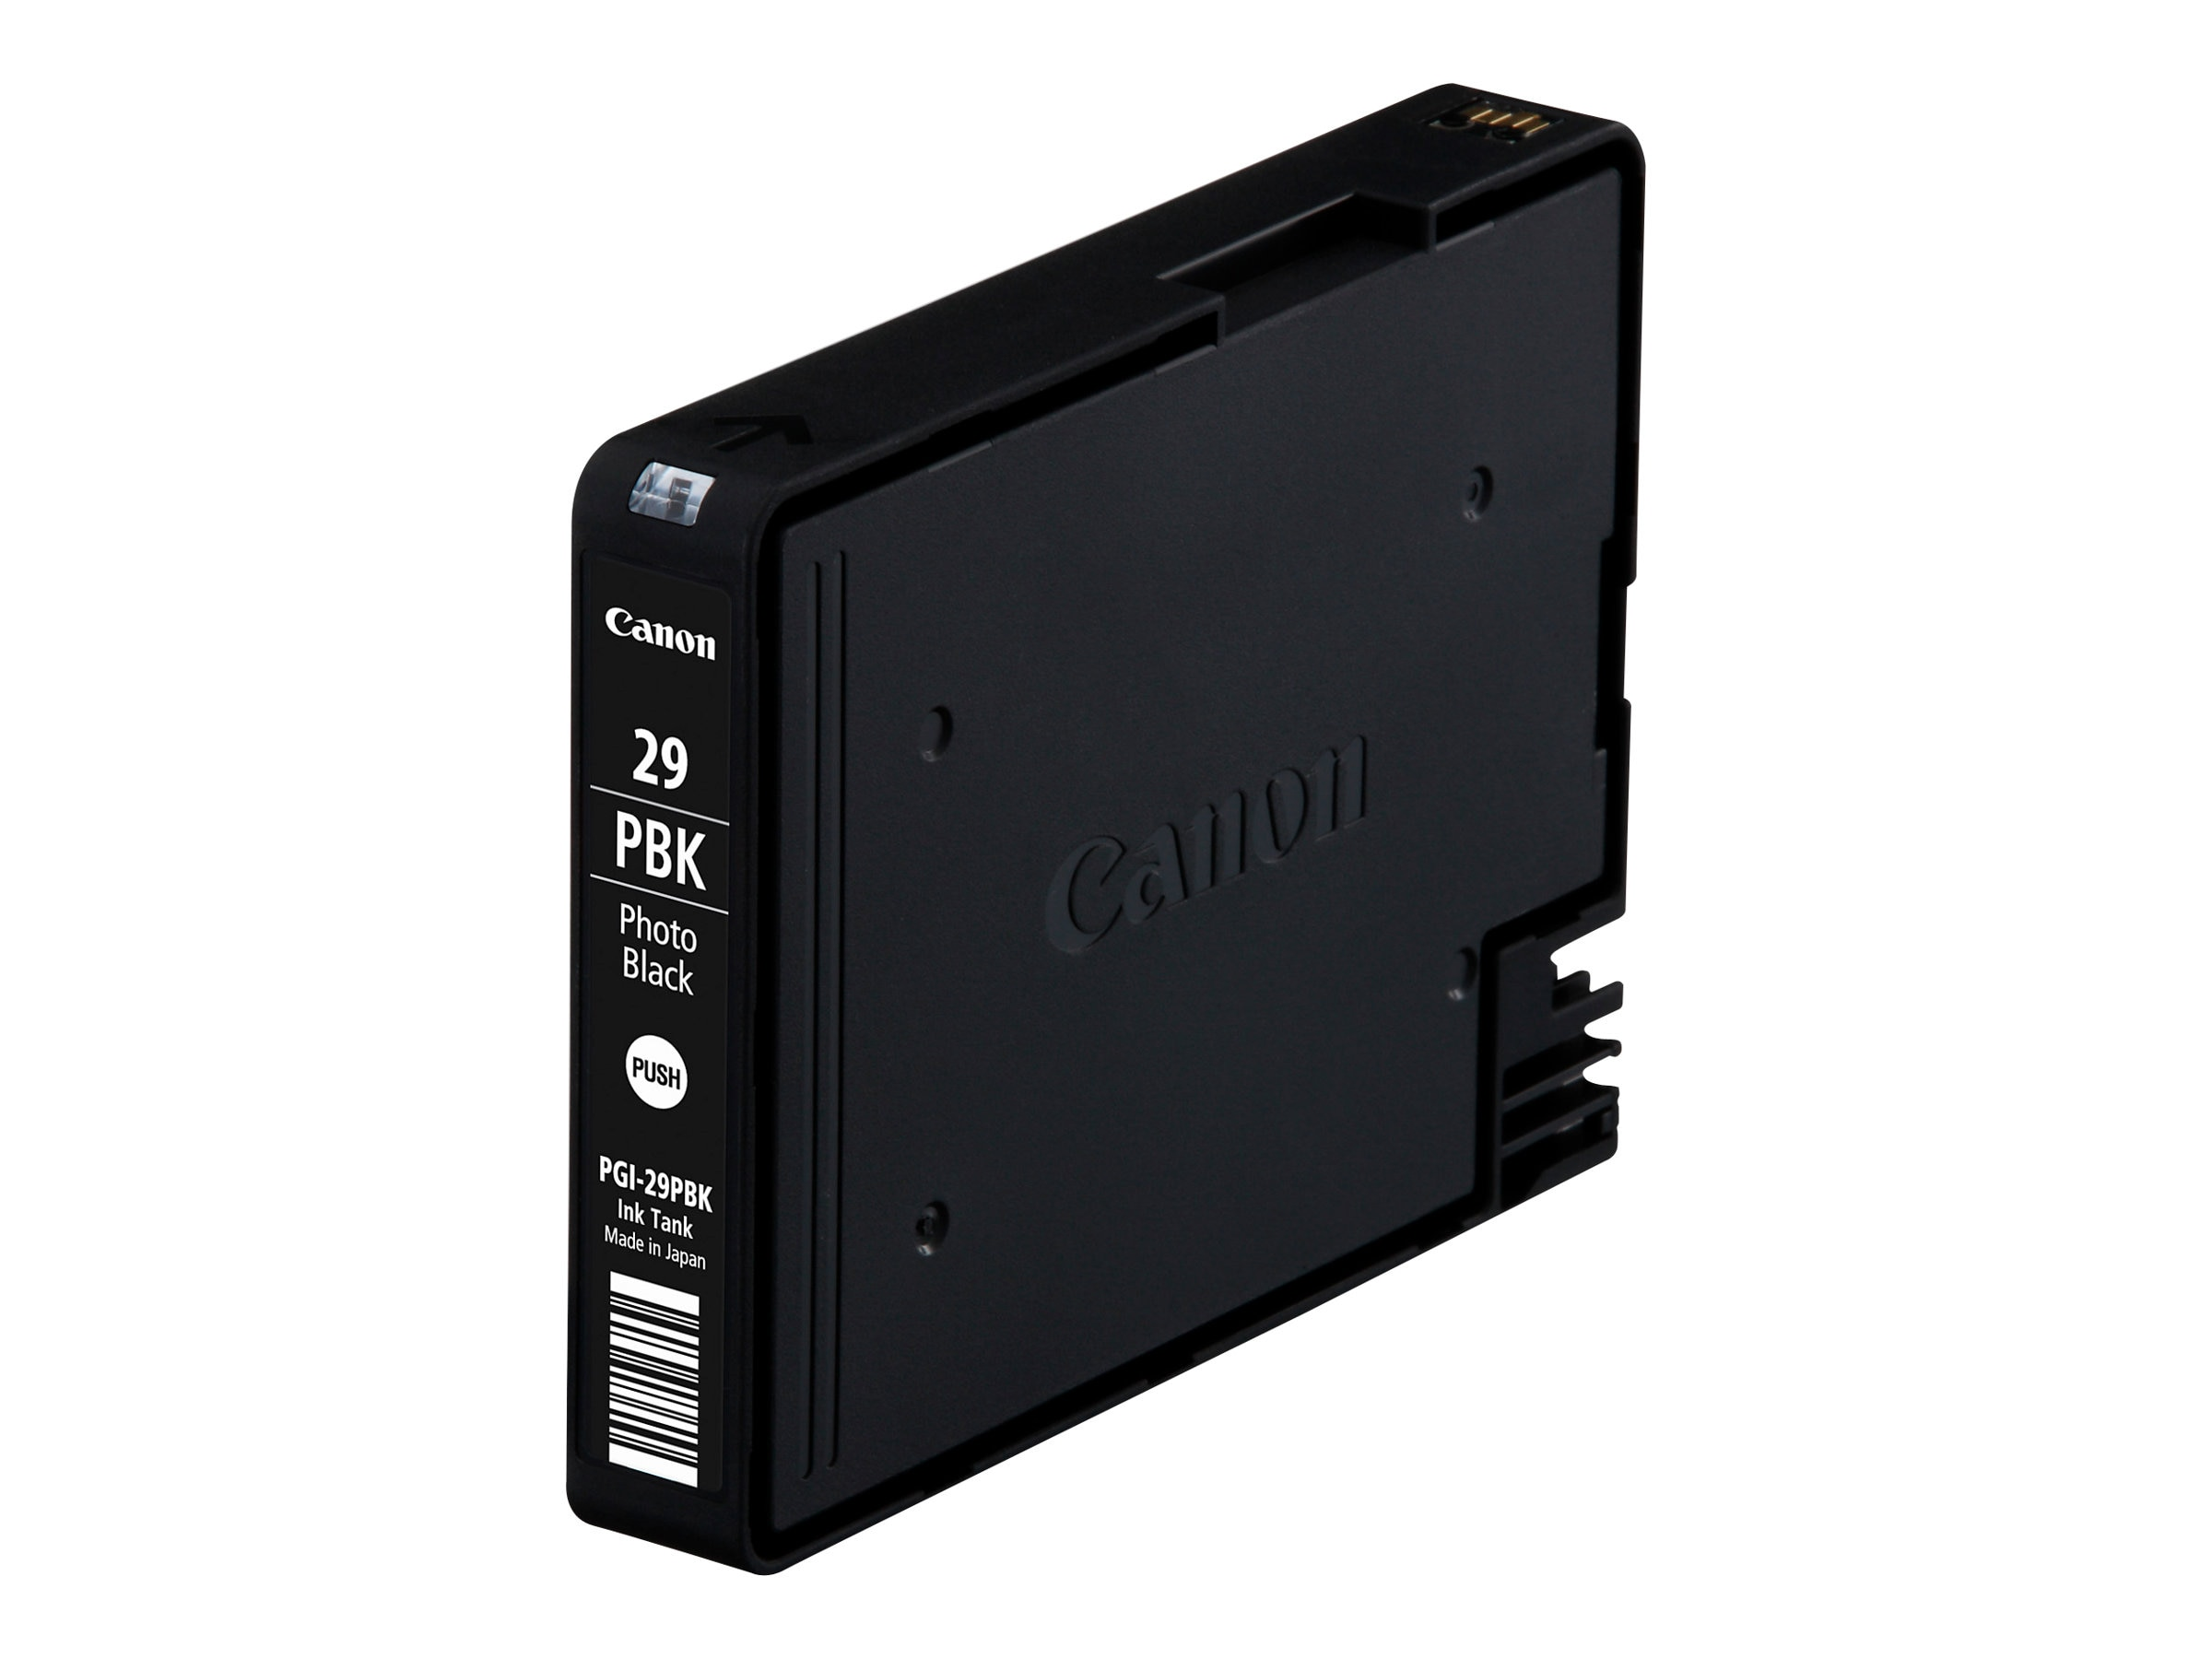 Canon Photo Black PGI-29PBK Ink Tank